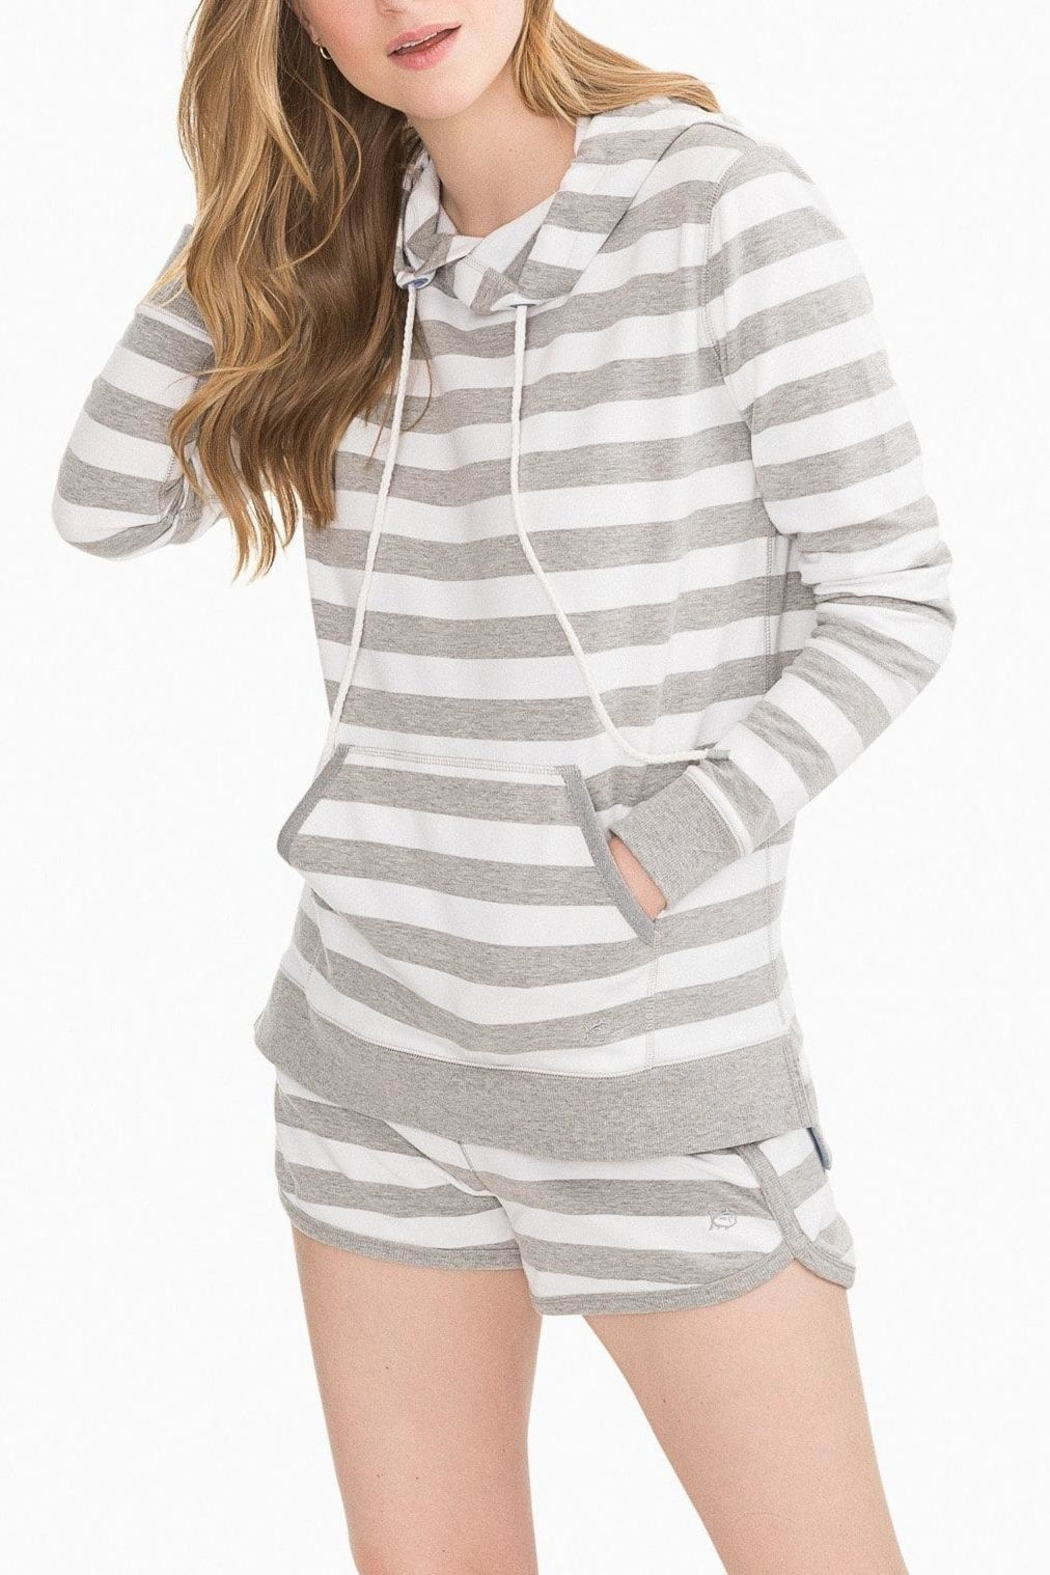 Southern Tide Soleil Striped Hoodie - Main Image